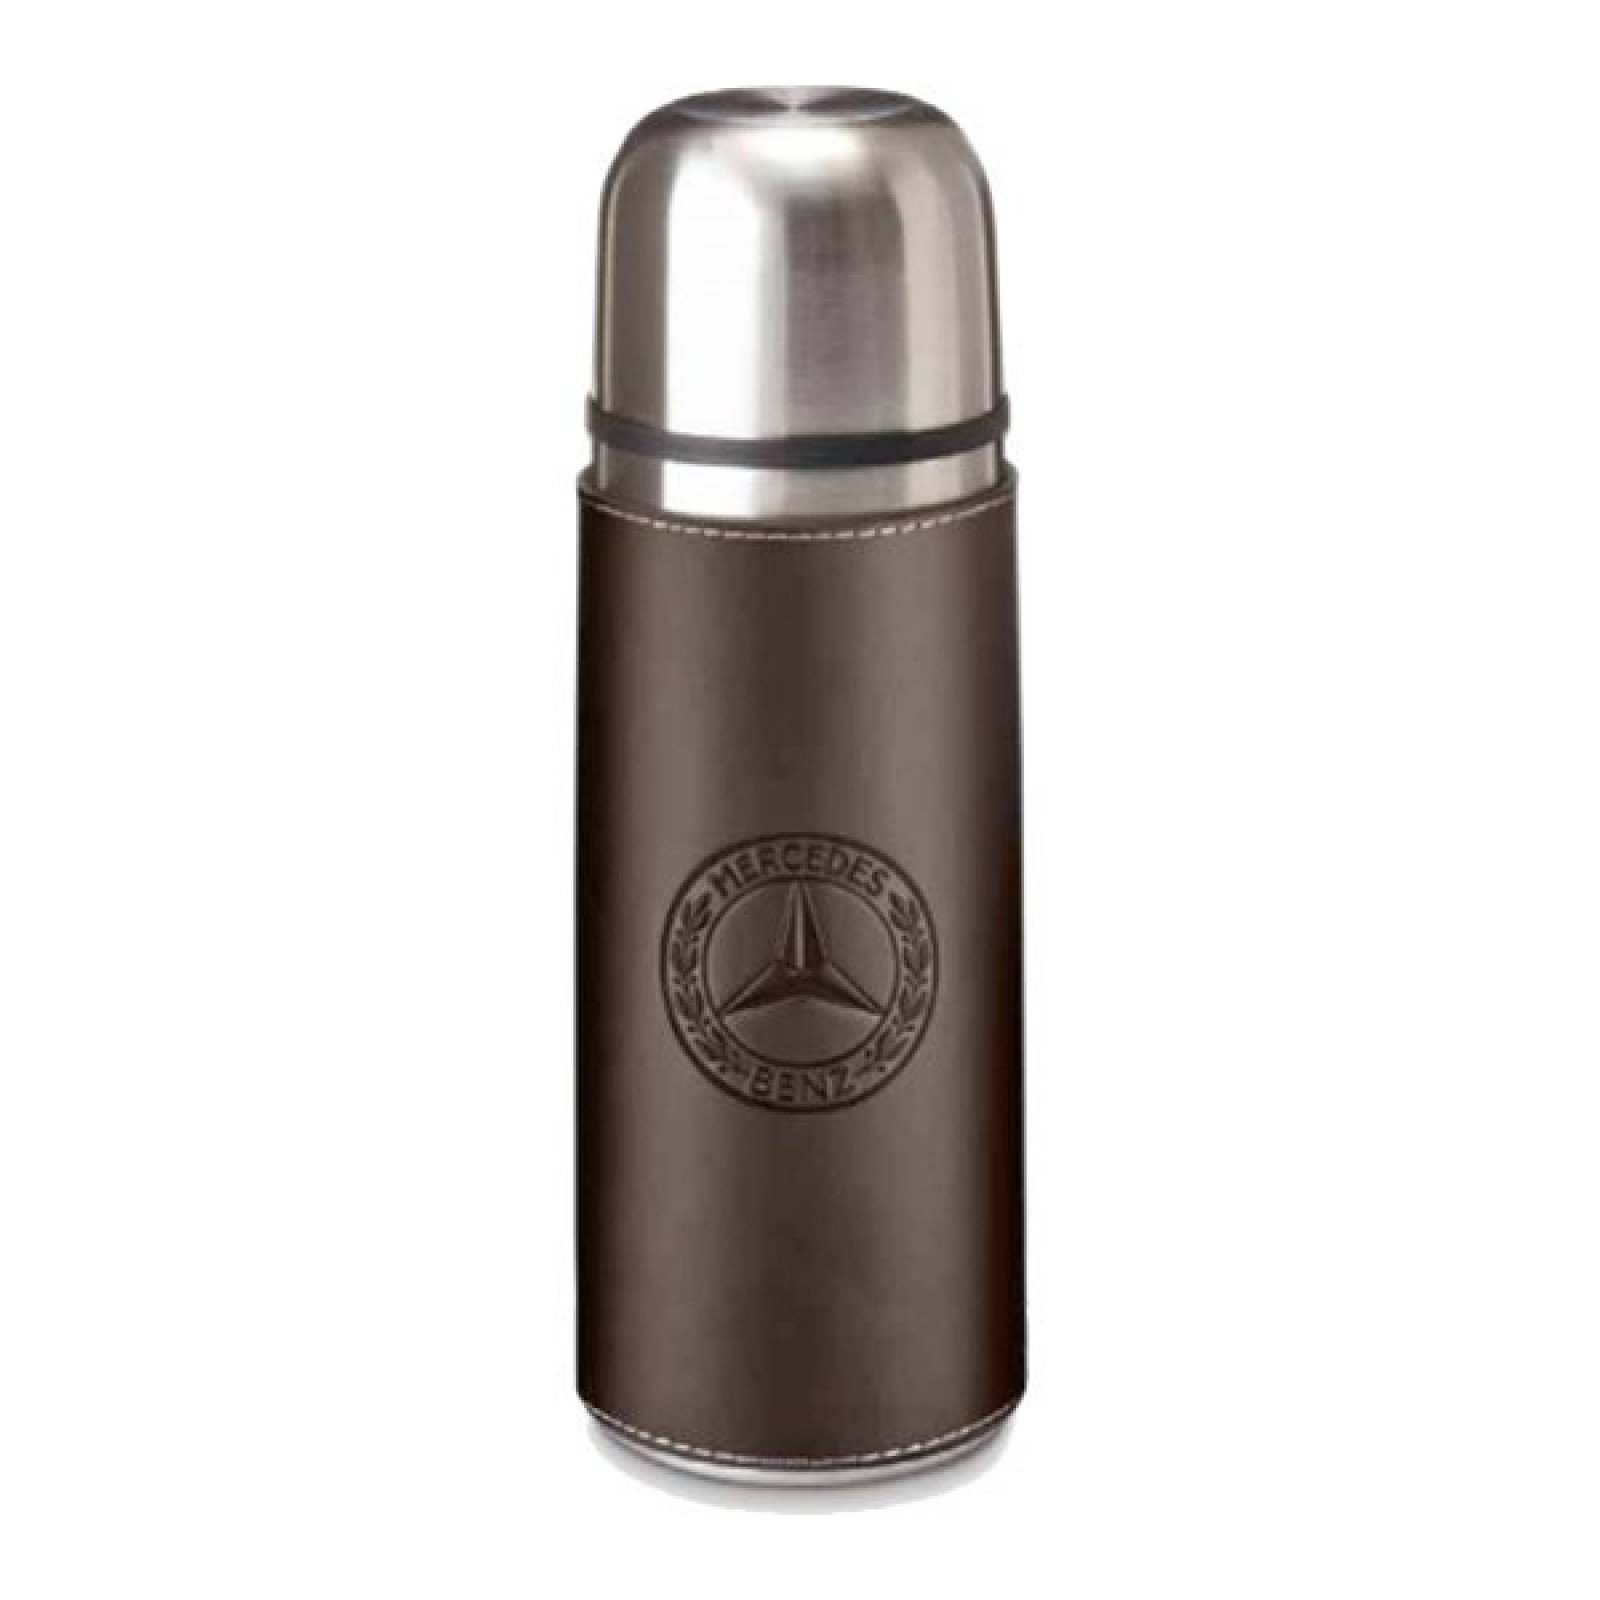 mercedes benz official classic thermos flask stainless steel the sl shop. Black Bedroom Furniture Sets. Home Design Ideas